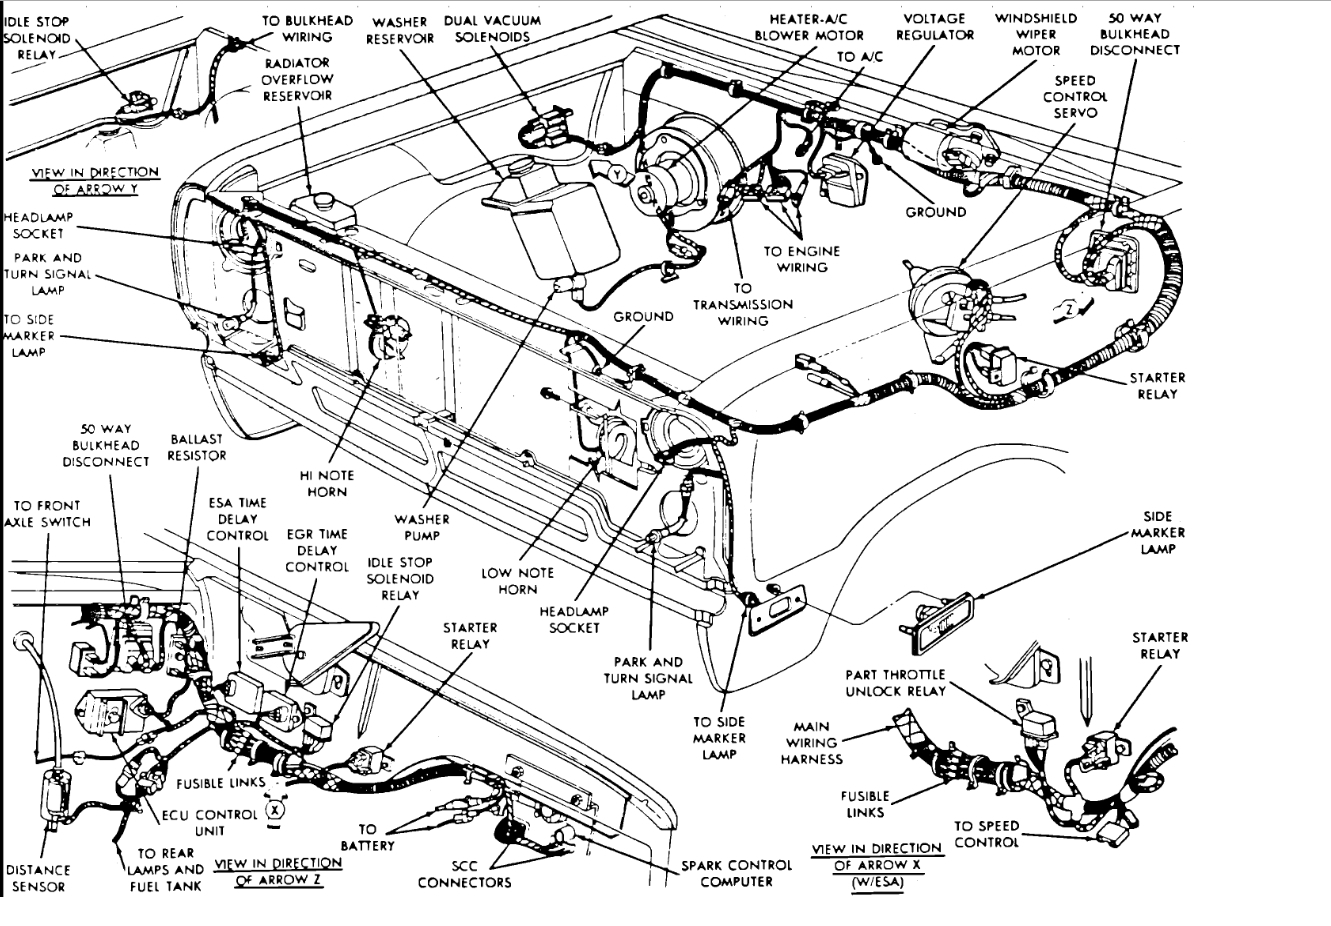 ceiling fan wiring diagram sears roebuck